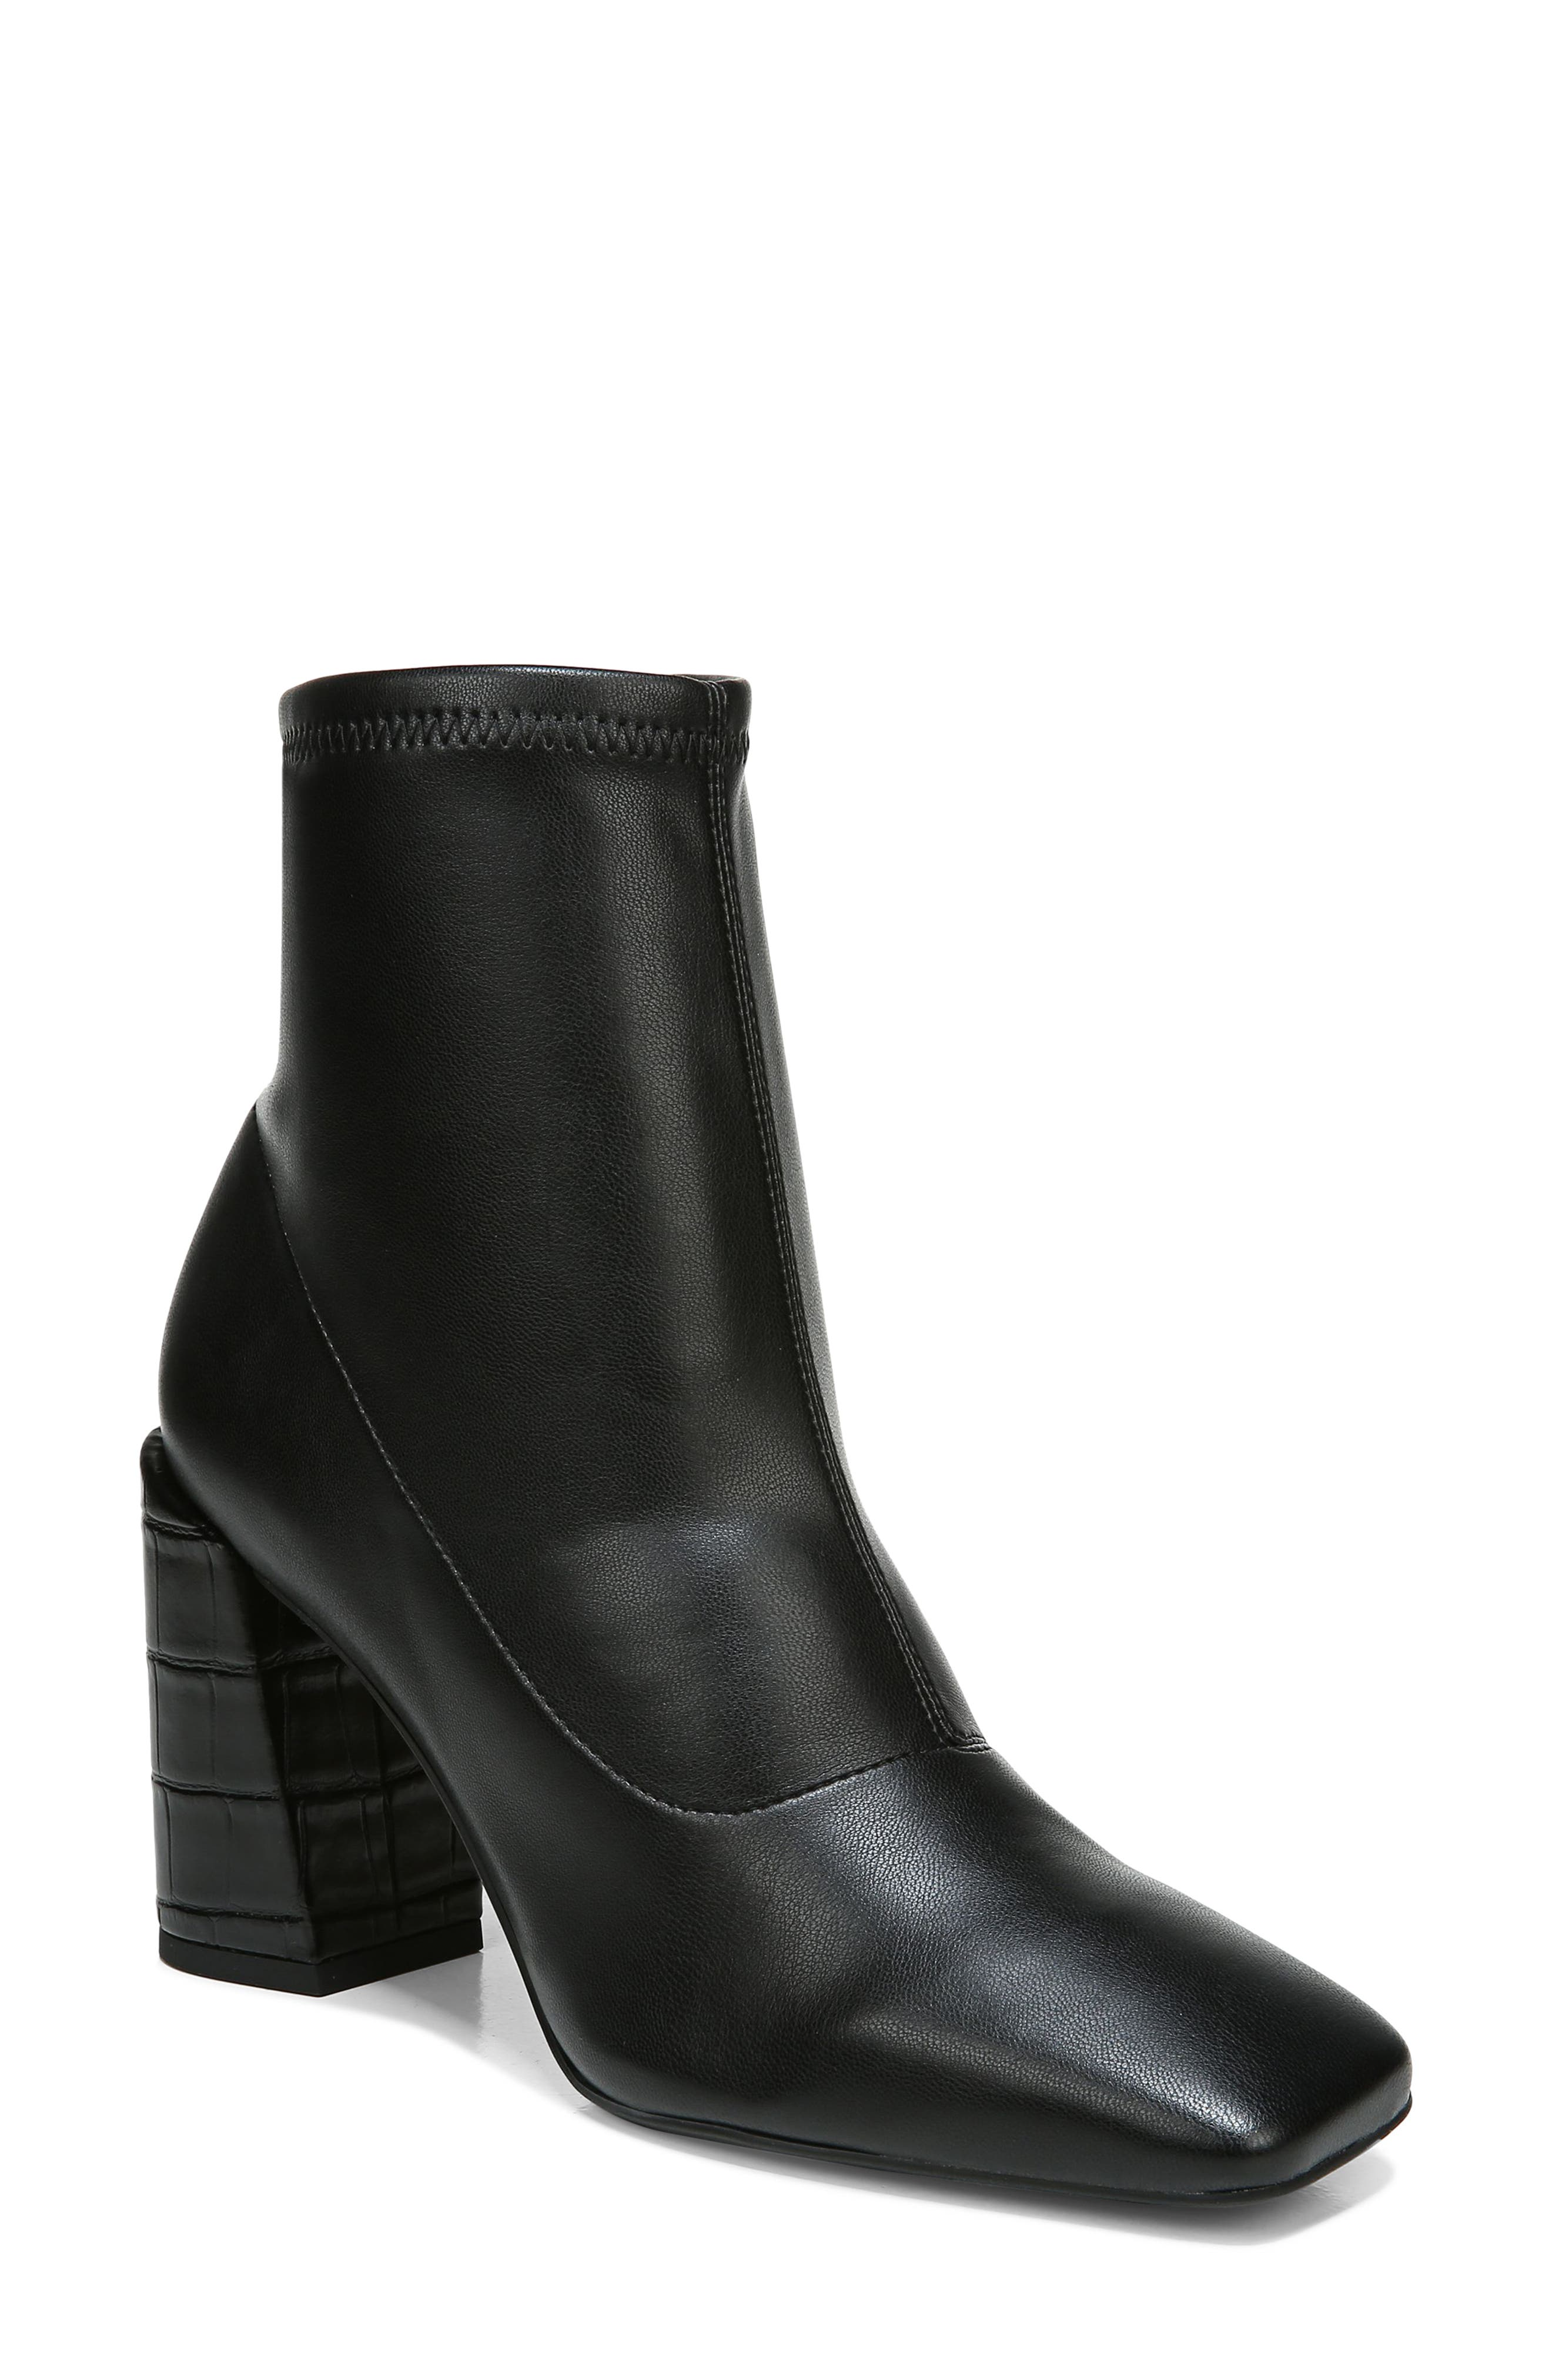 All Women's Booties Sale Wide Shoes